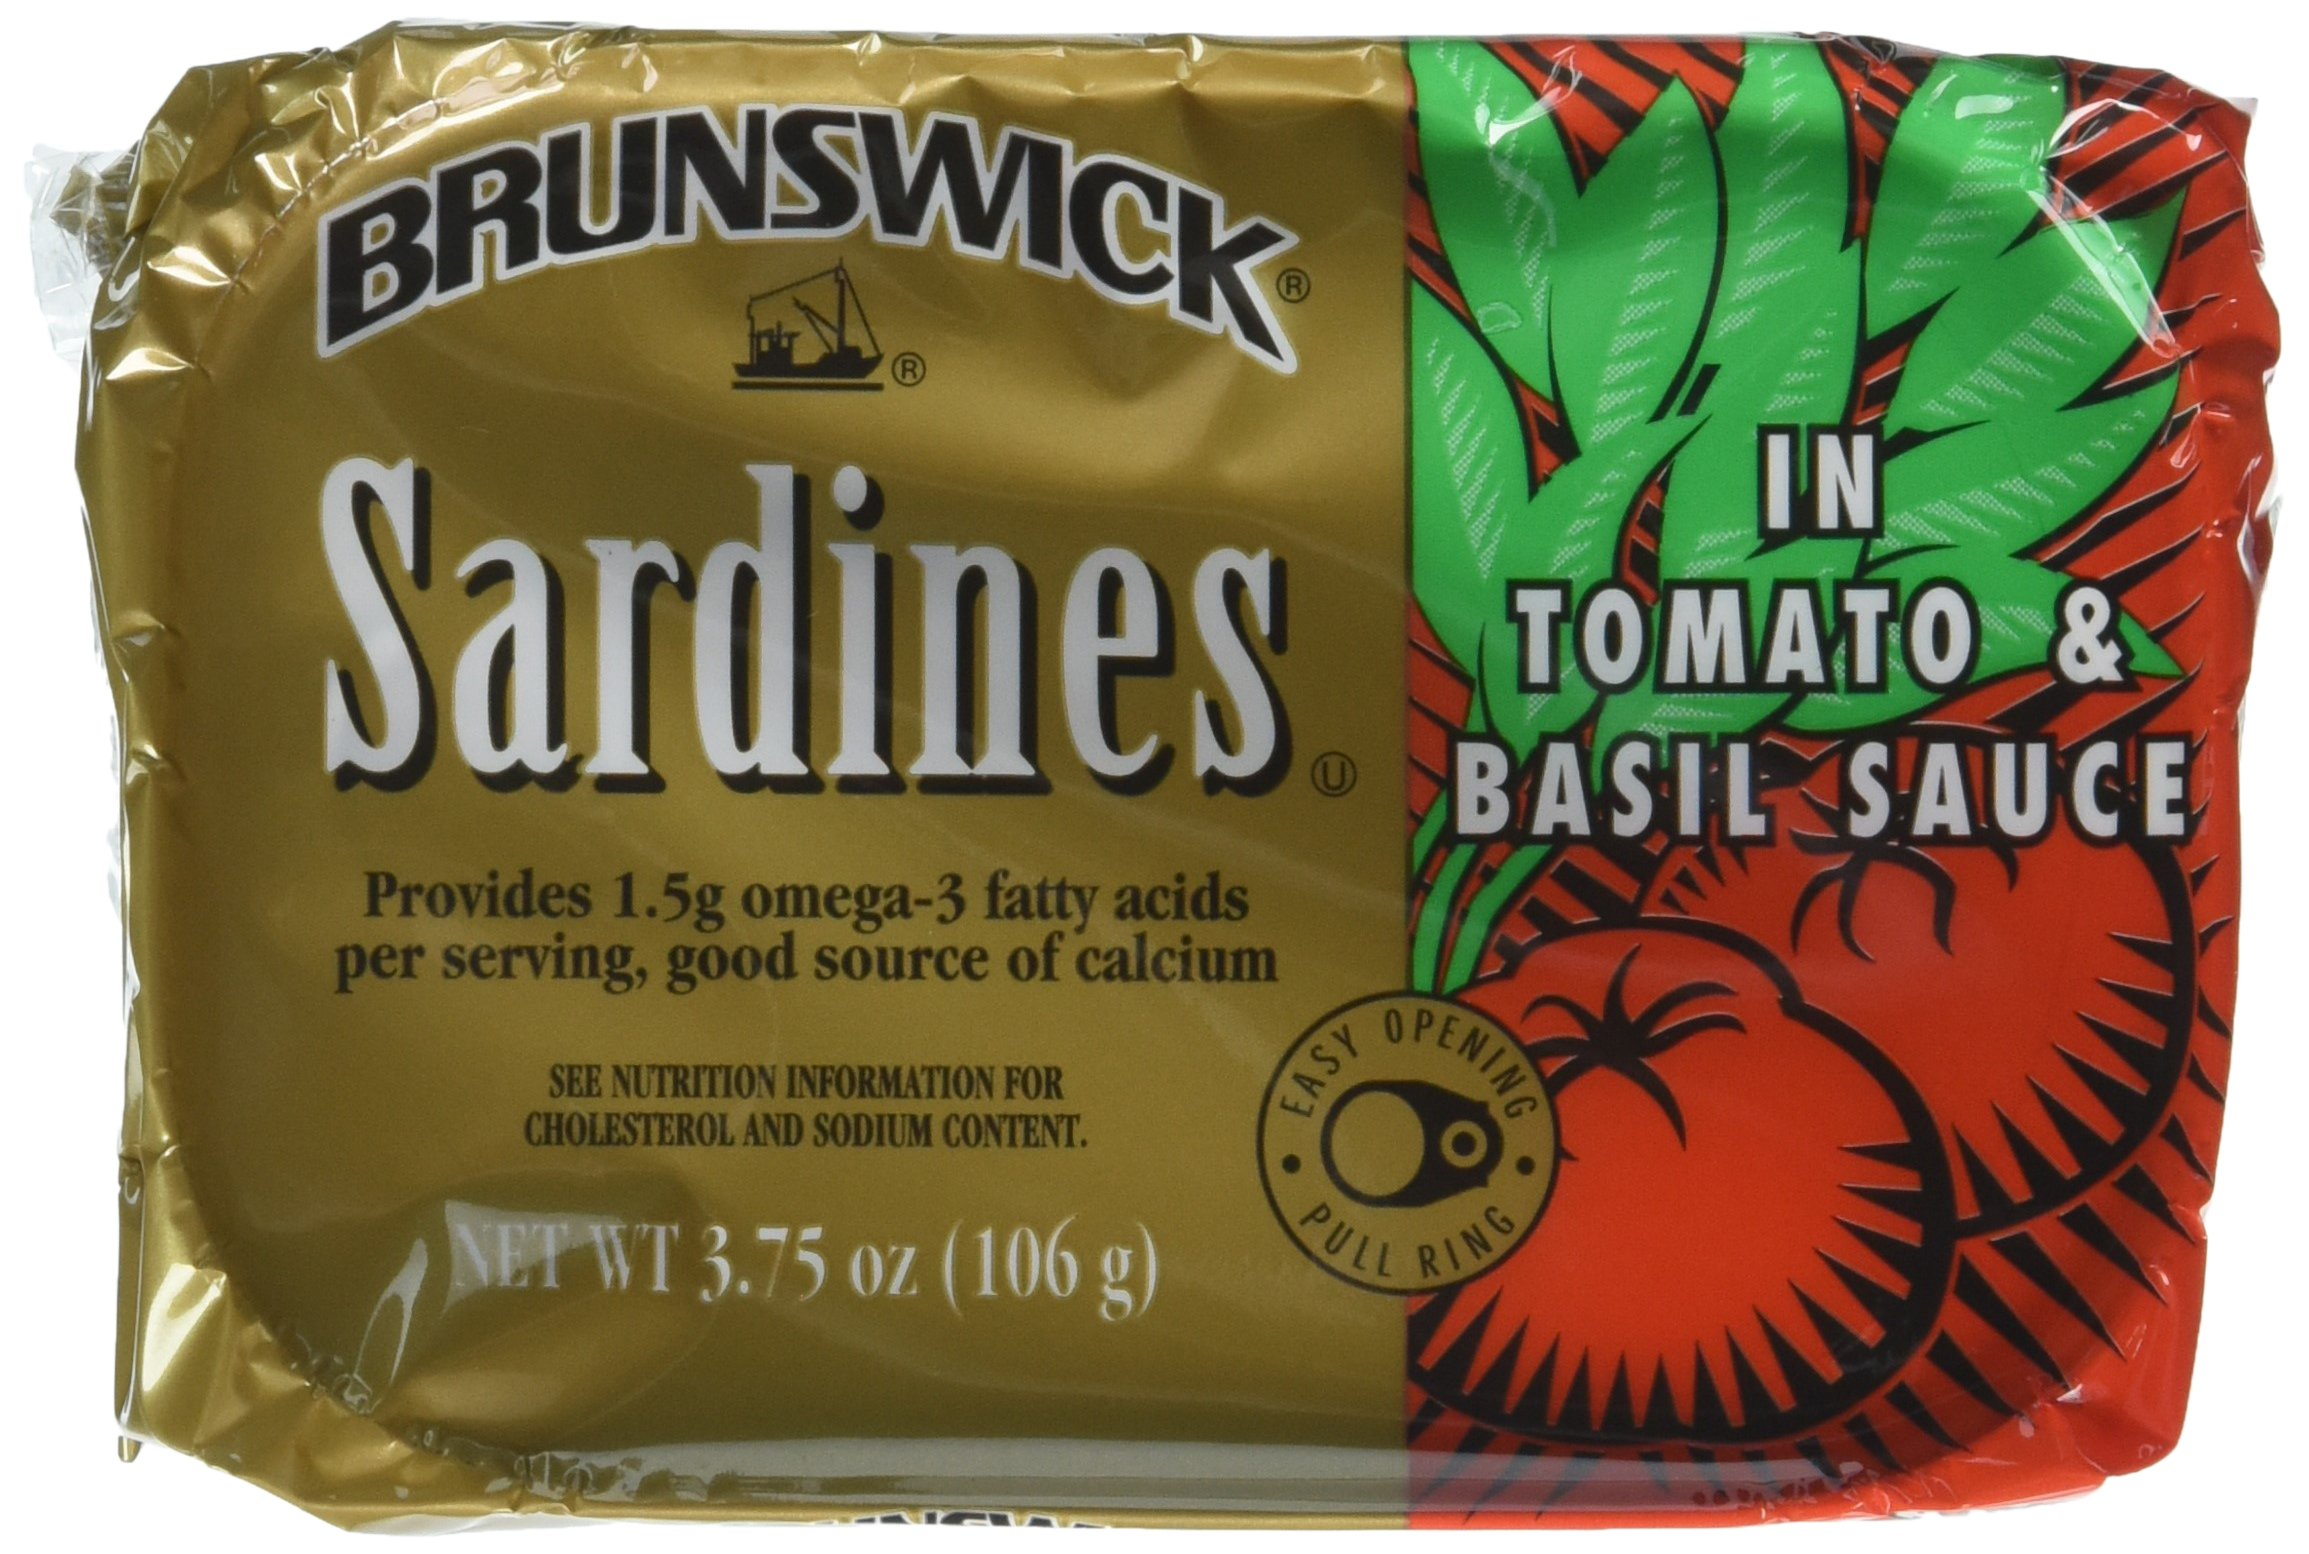 Brunswick Sardines In Tomato and Basil Sauce, 3.75 Ounce Cans, 18 Count